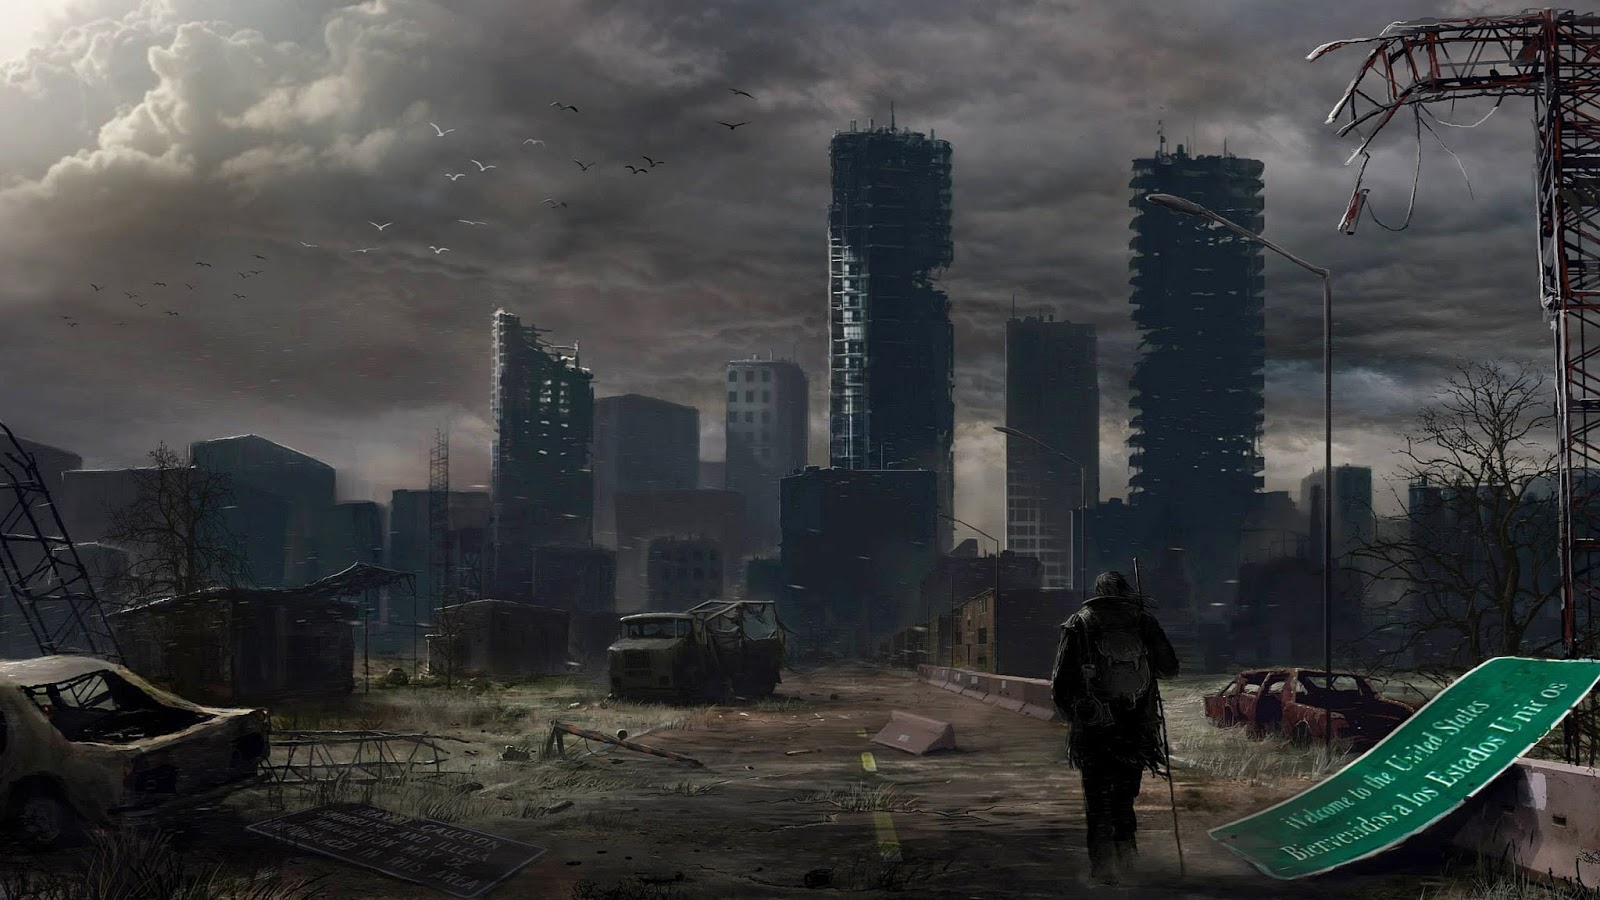 World Wildness Web: Post Apocalyptic Wallpapers